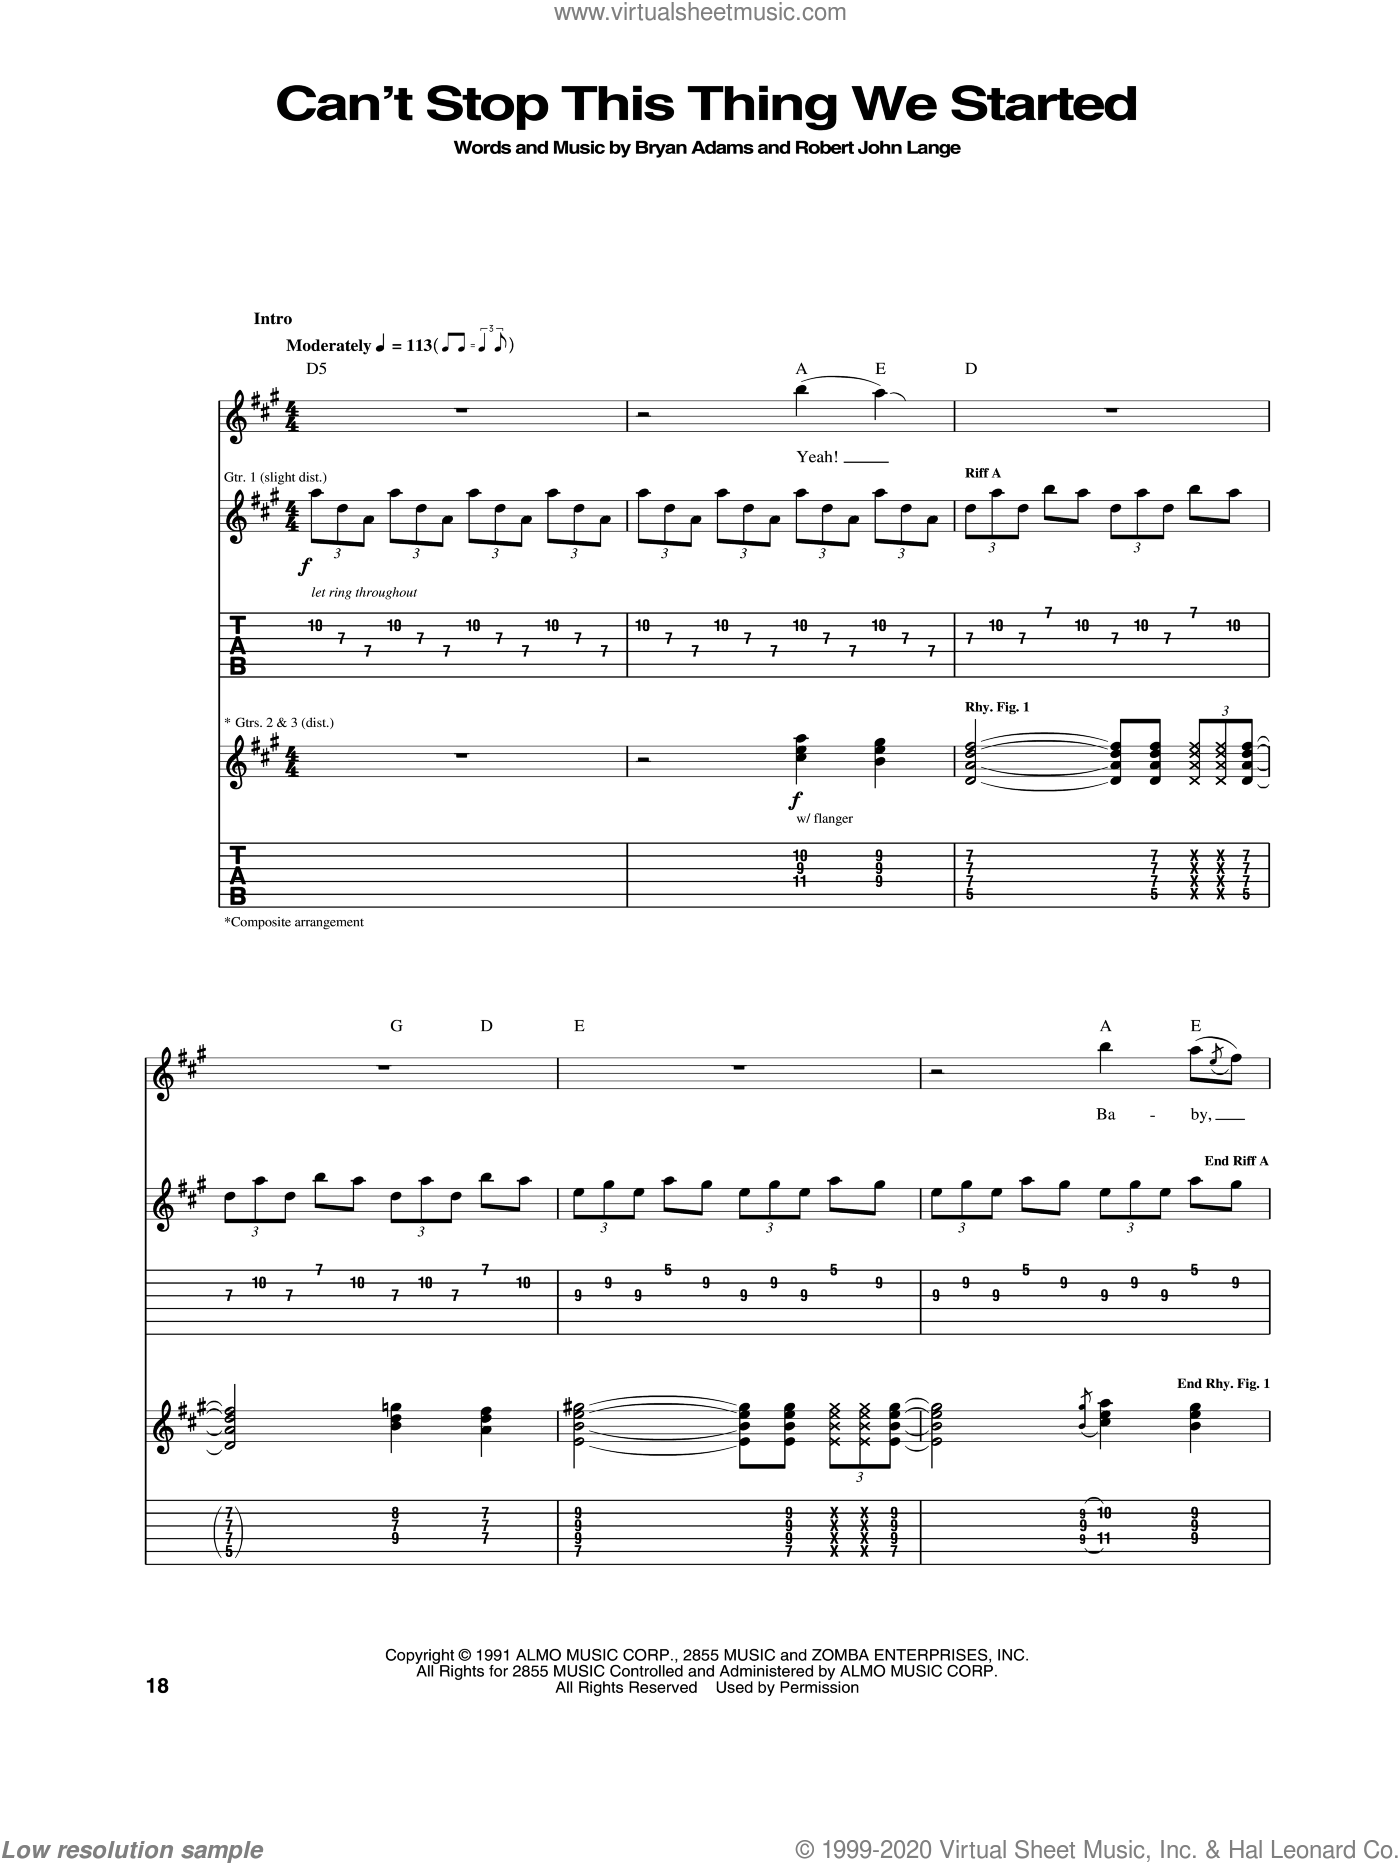 Can't Stop This Thing We Started sheet music for guitar (tablature) by Robert John Lange and Bryan Adams. Score Image Preview.